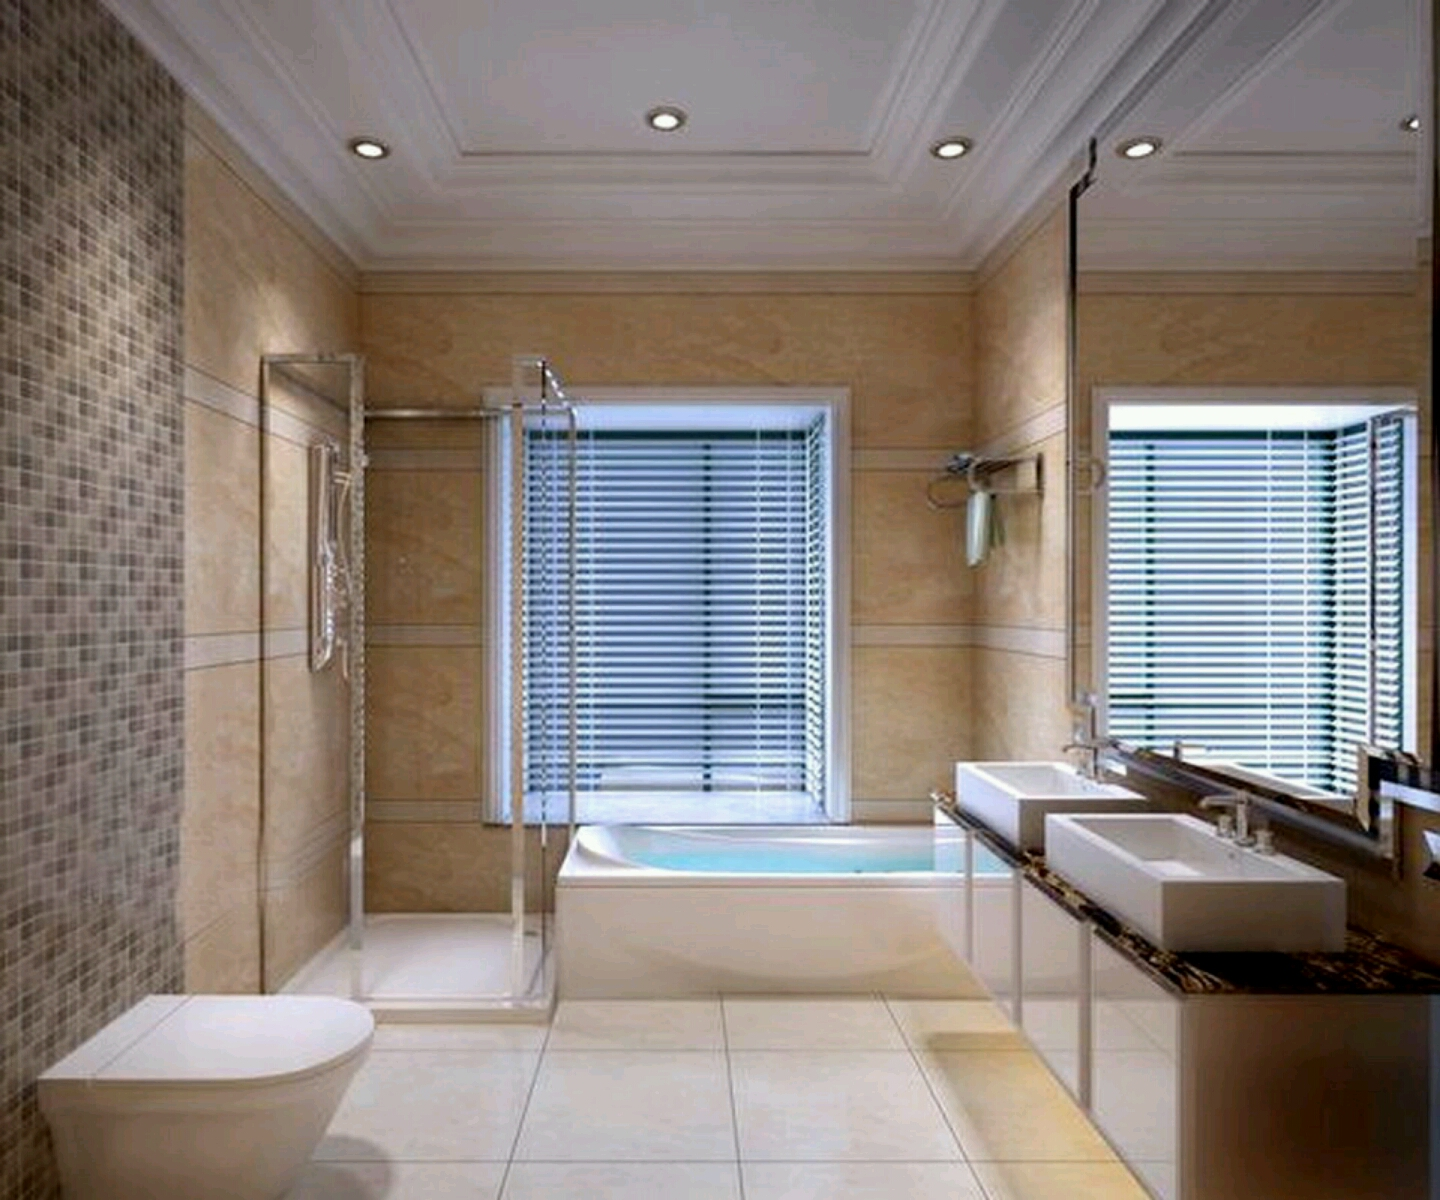 Remarkable Best Bathrooms Designs All About Bathroom Ideas Largest Home Design Picture Inspirations Pitcheantrous